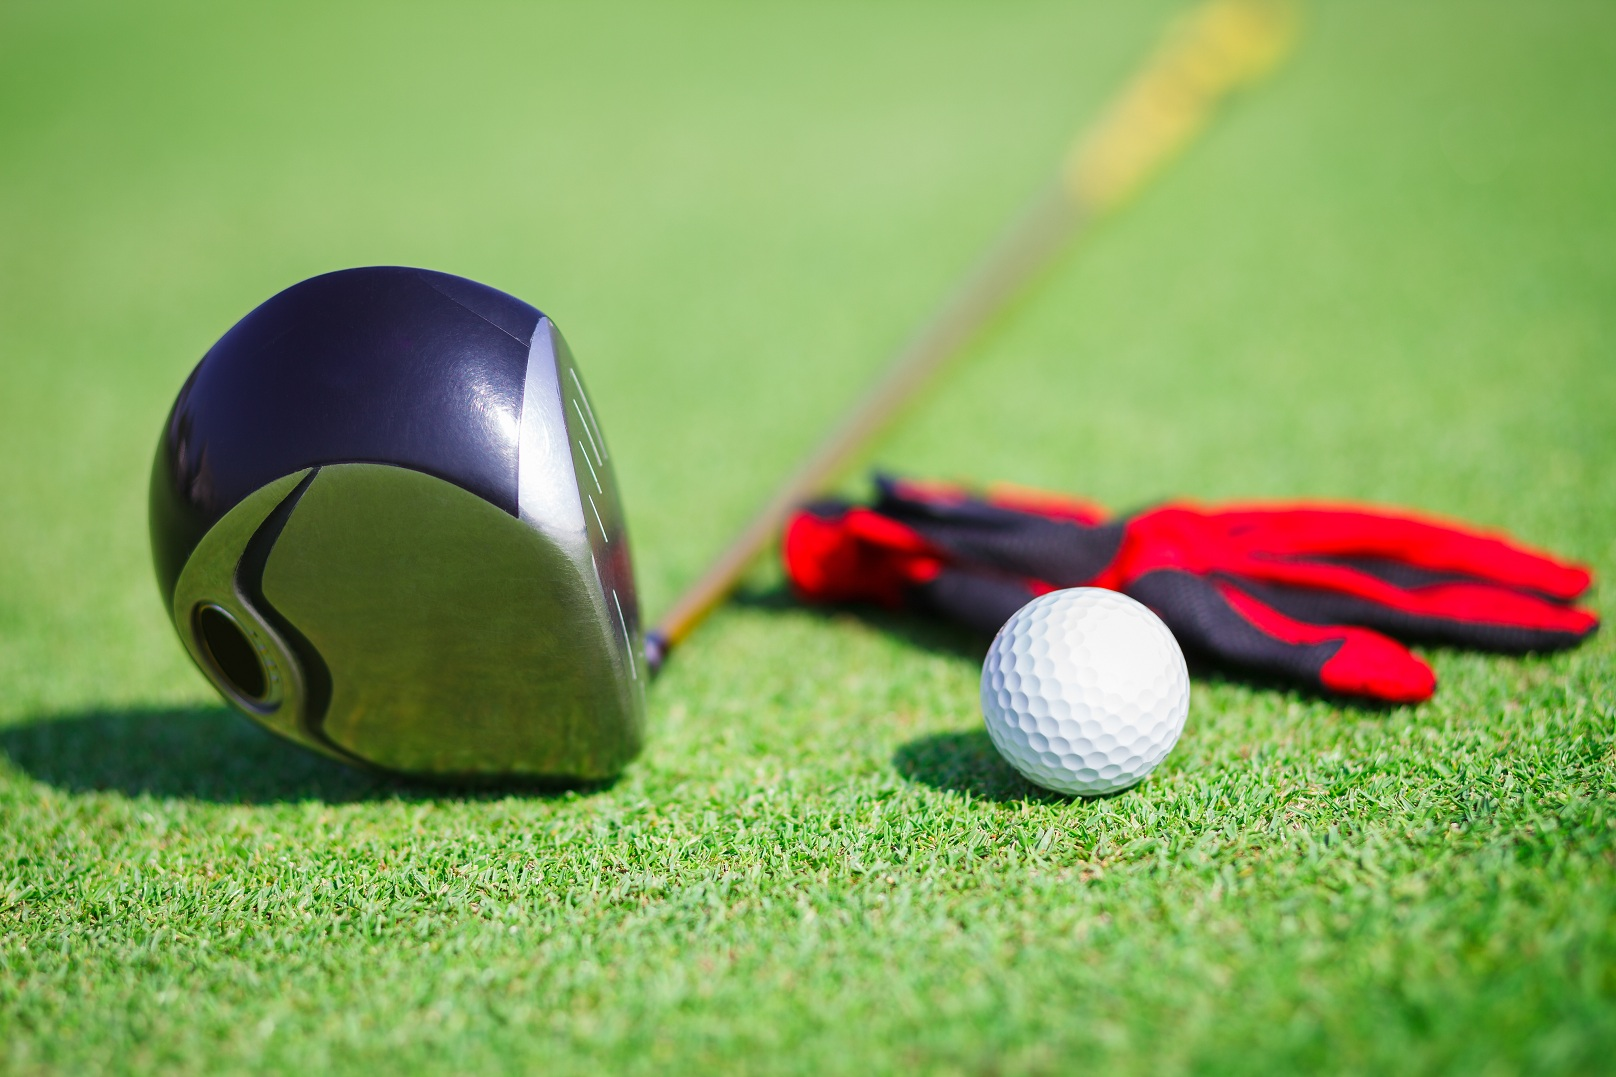 golf clubs how to find the right size million dollar hole in one